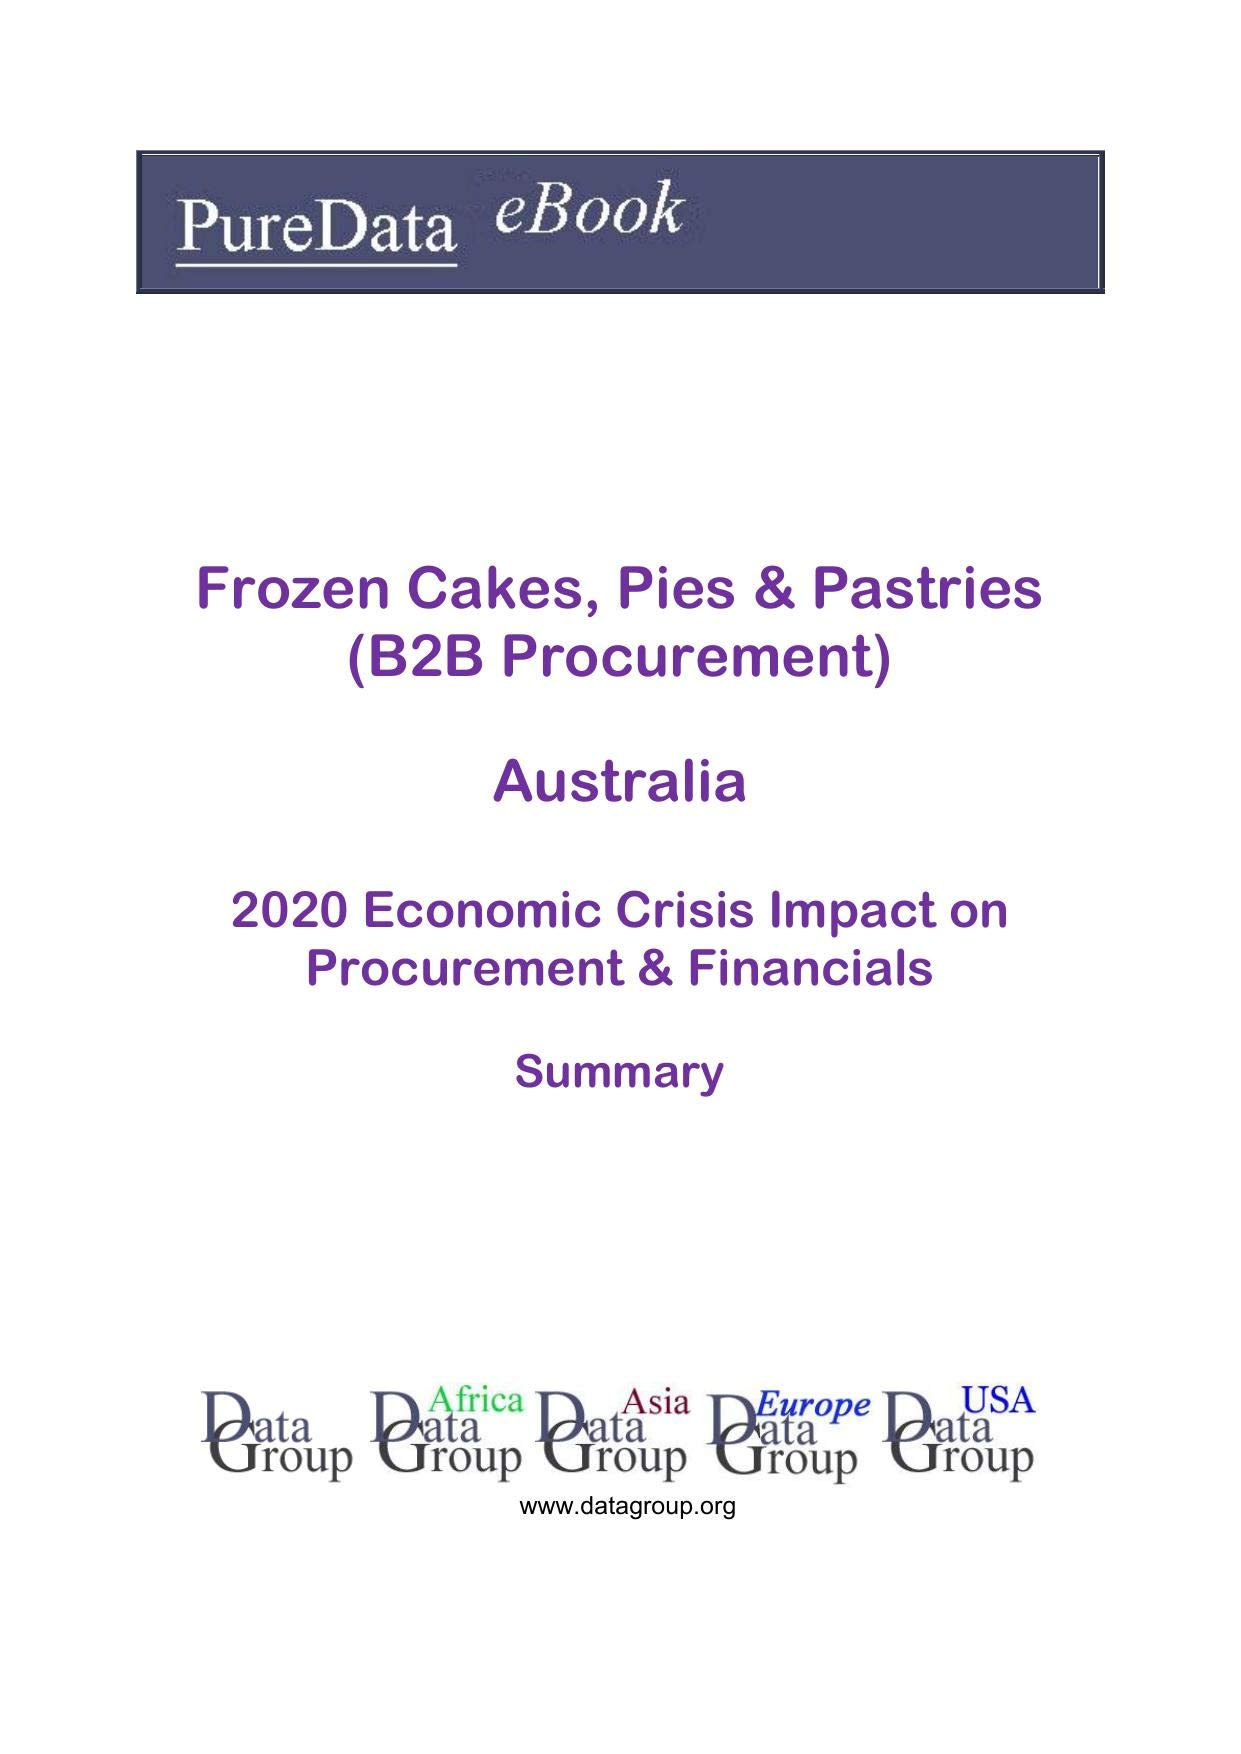 Frozen Cakes, Pies & Pastries (B2B Procurement) Australia Summary: 2020 Economic Crisis Impact on Revenues & Financials